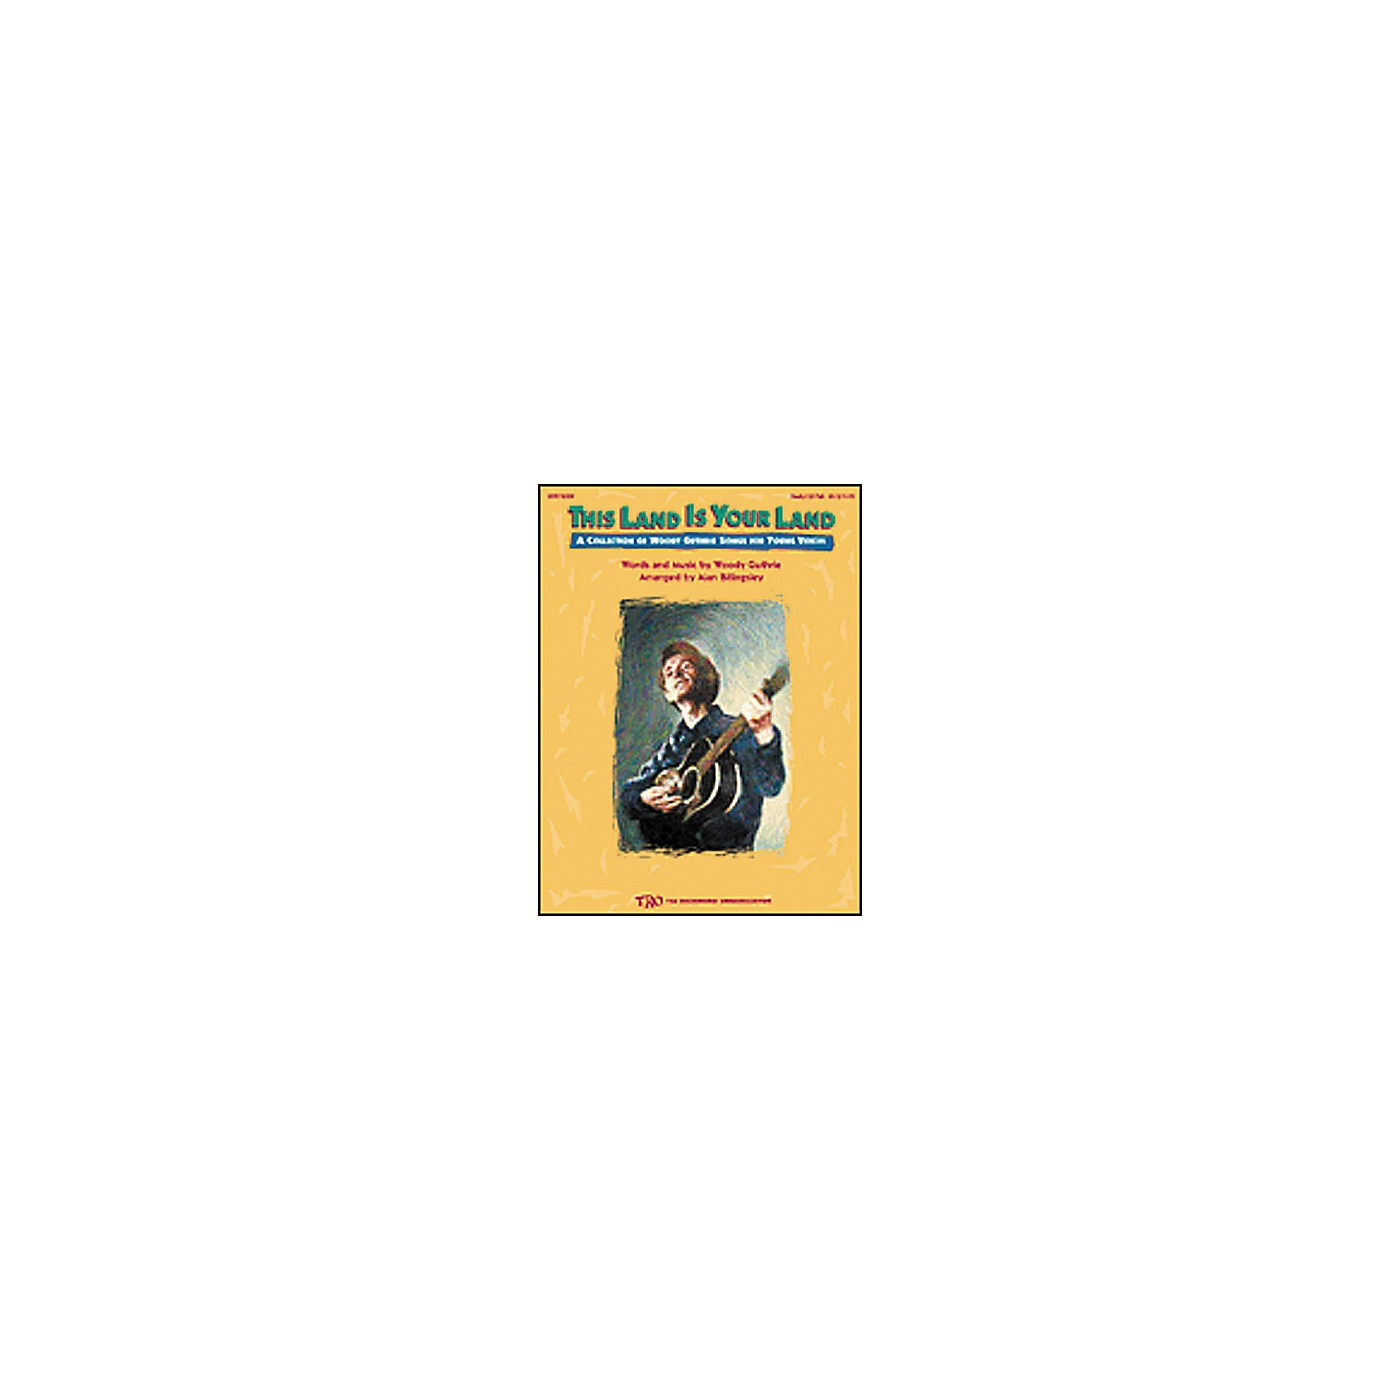 Hal Leonard This Land is Your Land - A Collection of Woodie Guthrie Songs CD thumbnail